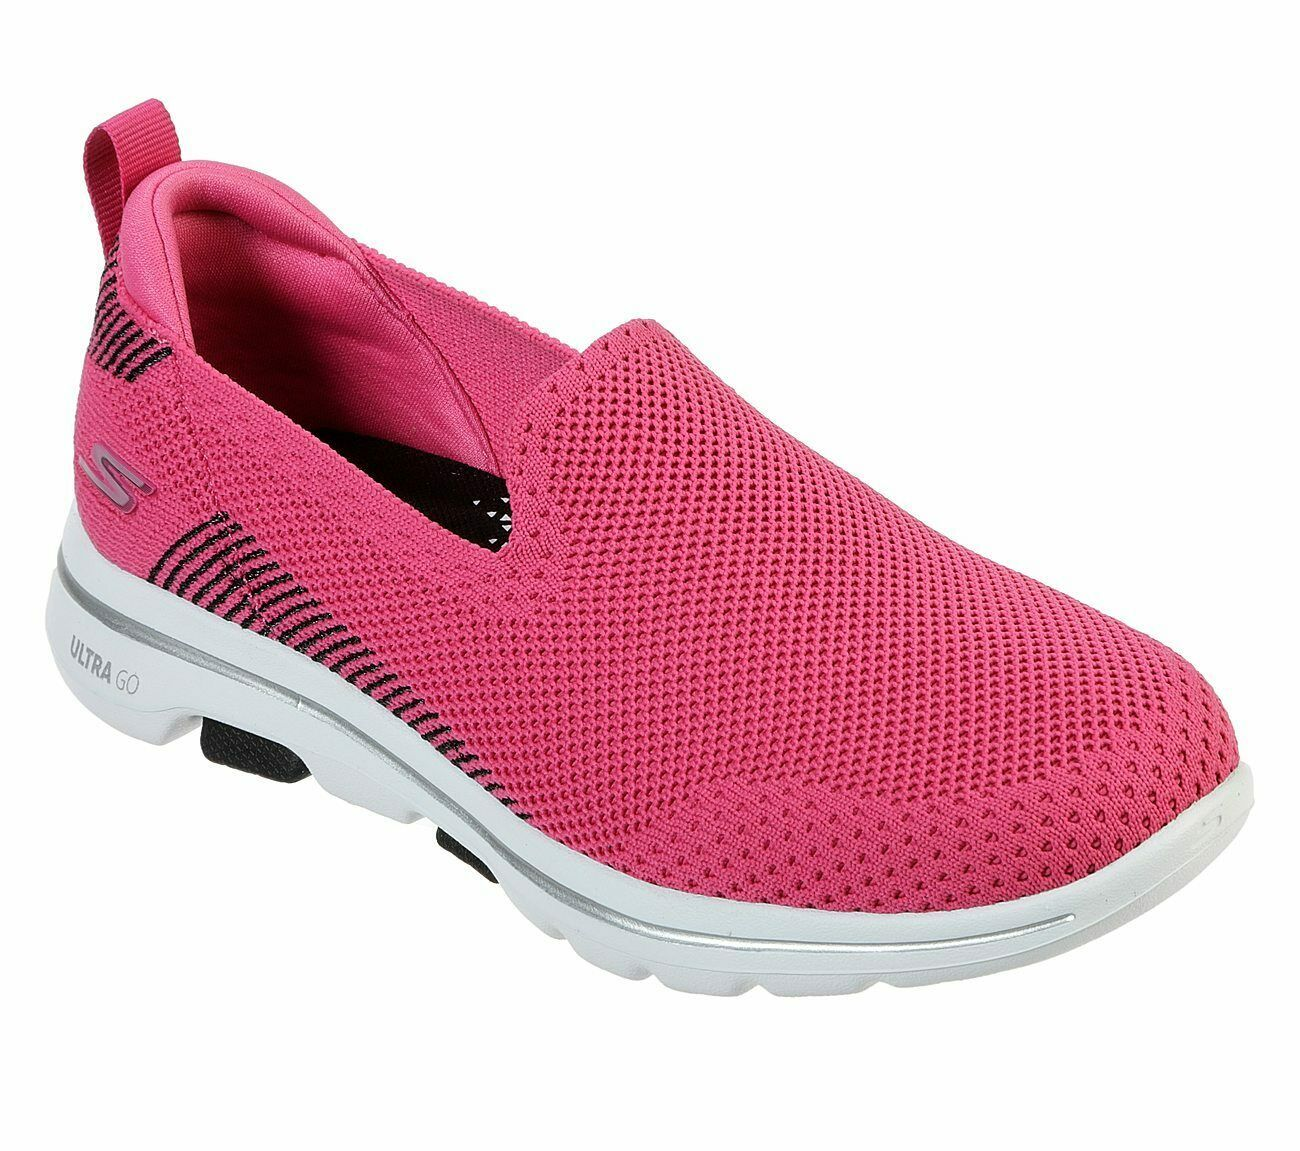 Skechers Shoes Pink Black Go Walk 5 Women's Casual Slip On Comfort Sporty 15900 image 1